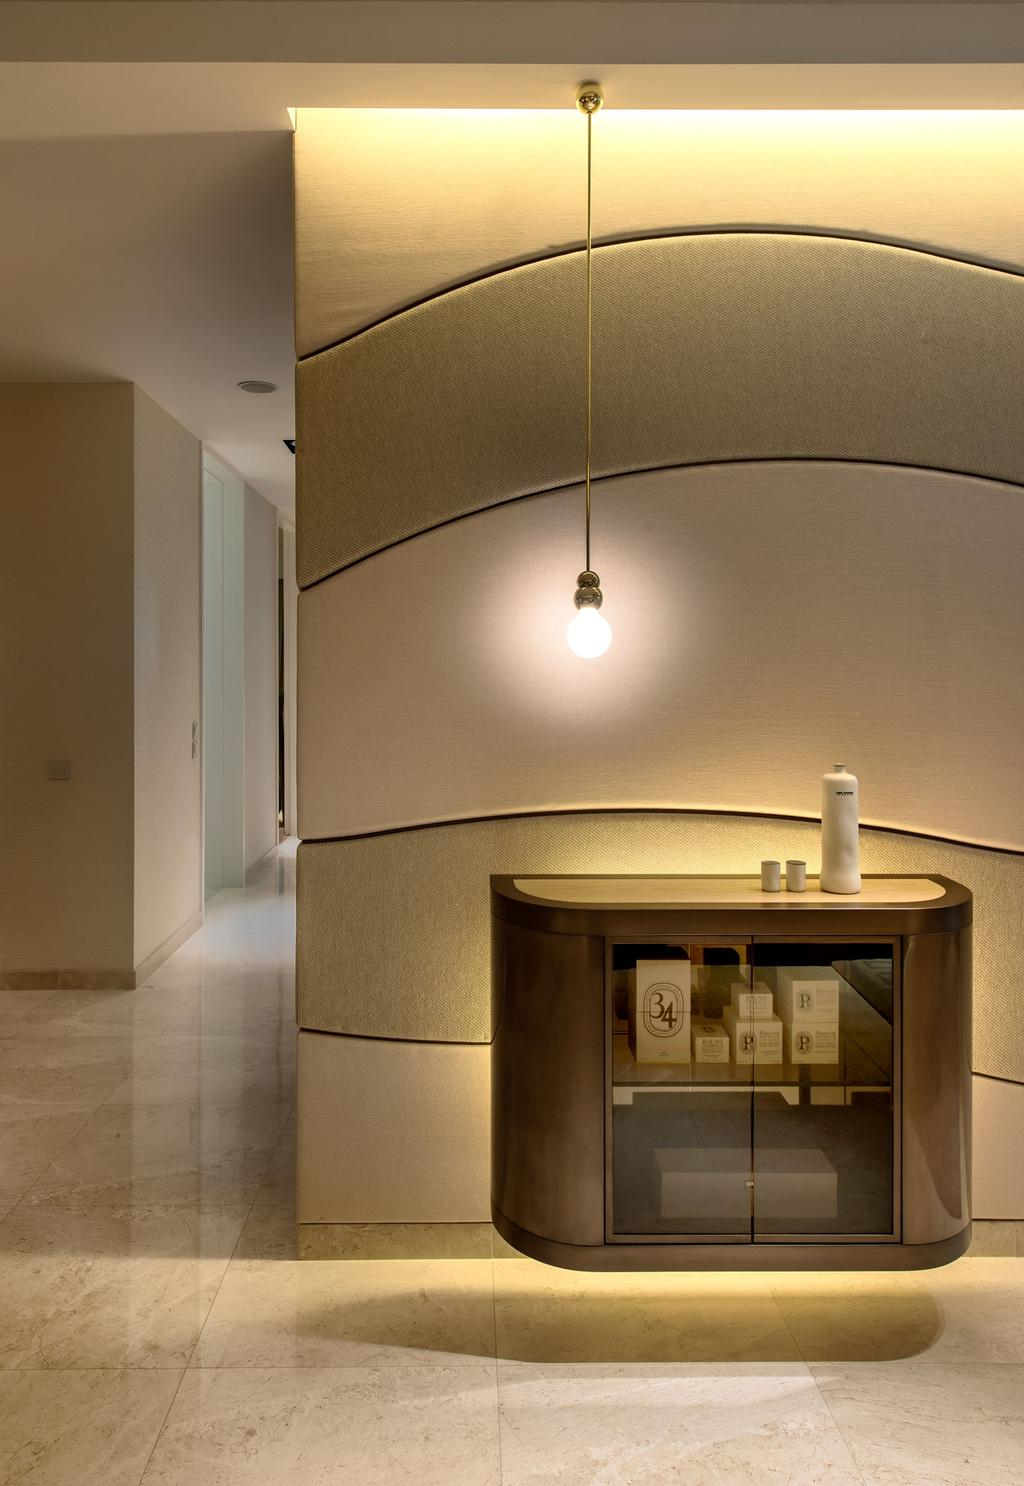 DUO Residences, Commercial, Architect, Ministry of Design, Contemporary, Marble Flooring, Hanging Light, Hanging Light Bulb, Wall Mounted Cabinet, Cabinet, Curvy Wall Designs, Concealed Lighting, Concealed Lights